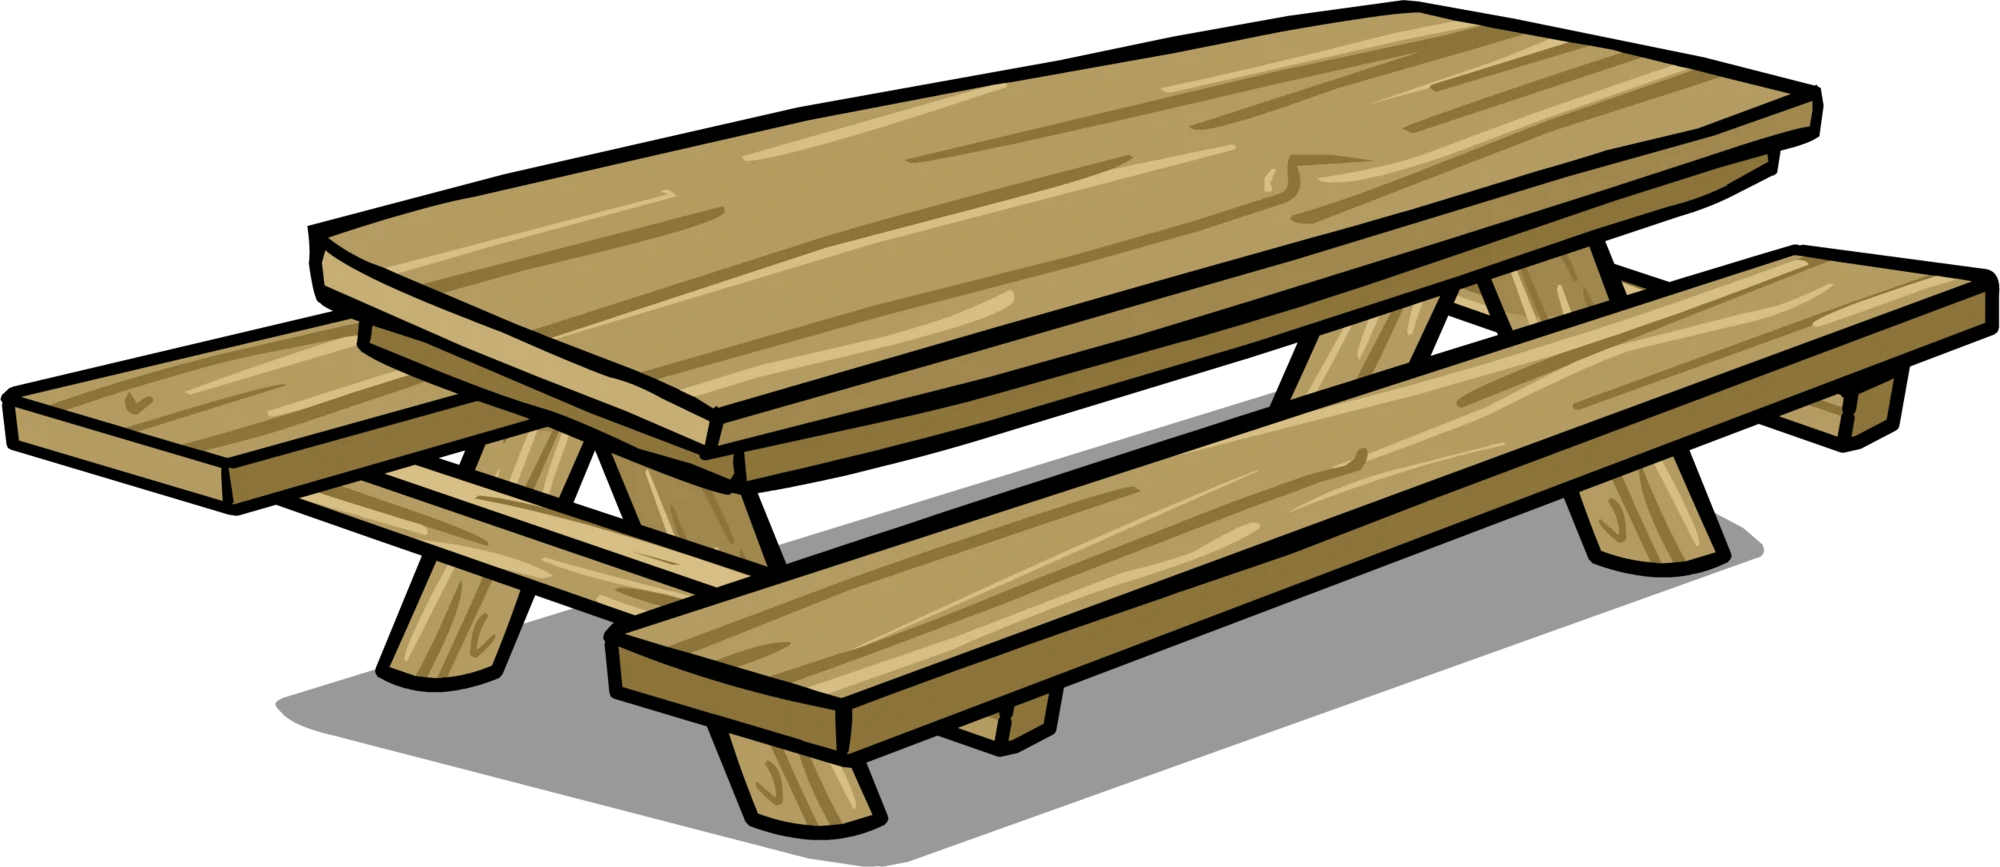 Gartenbank Clipart Image - Picnic Table Sprite 007.png | Club Penguin Wiki